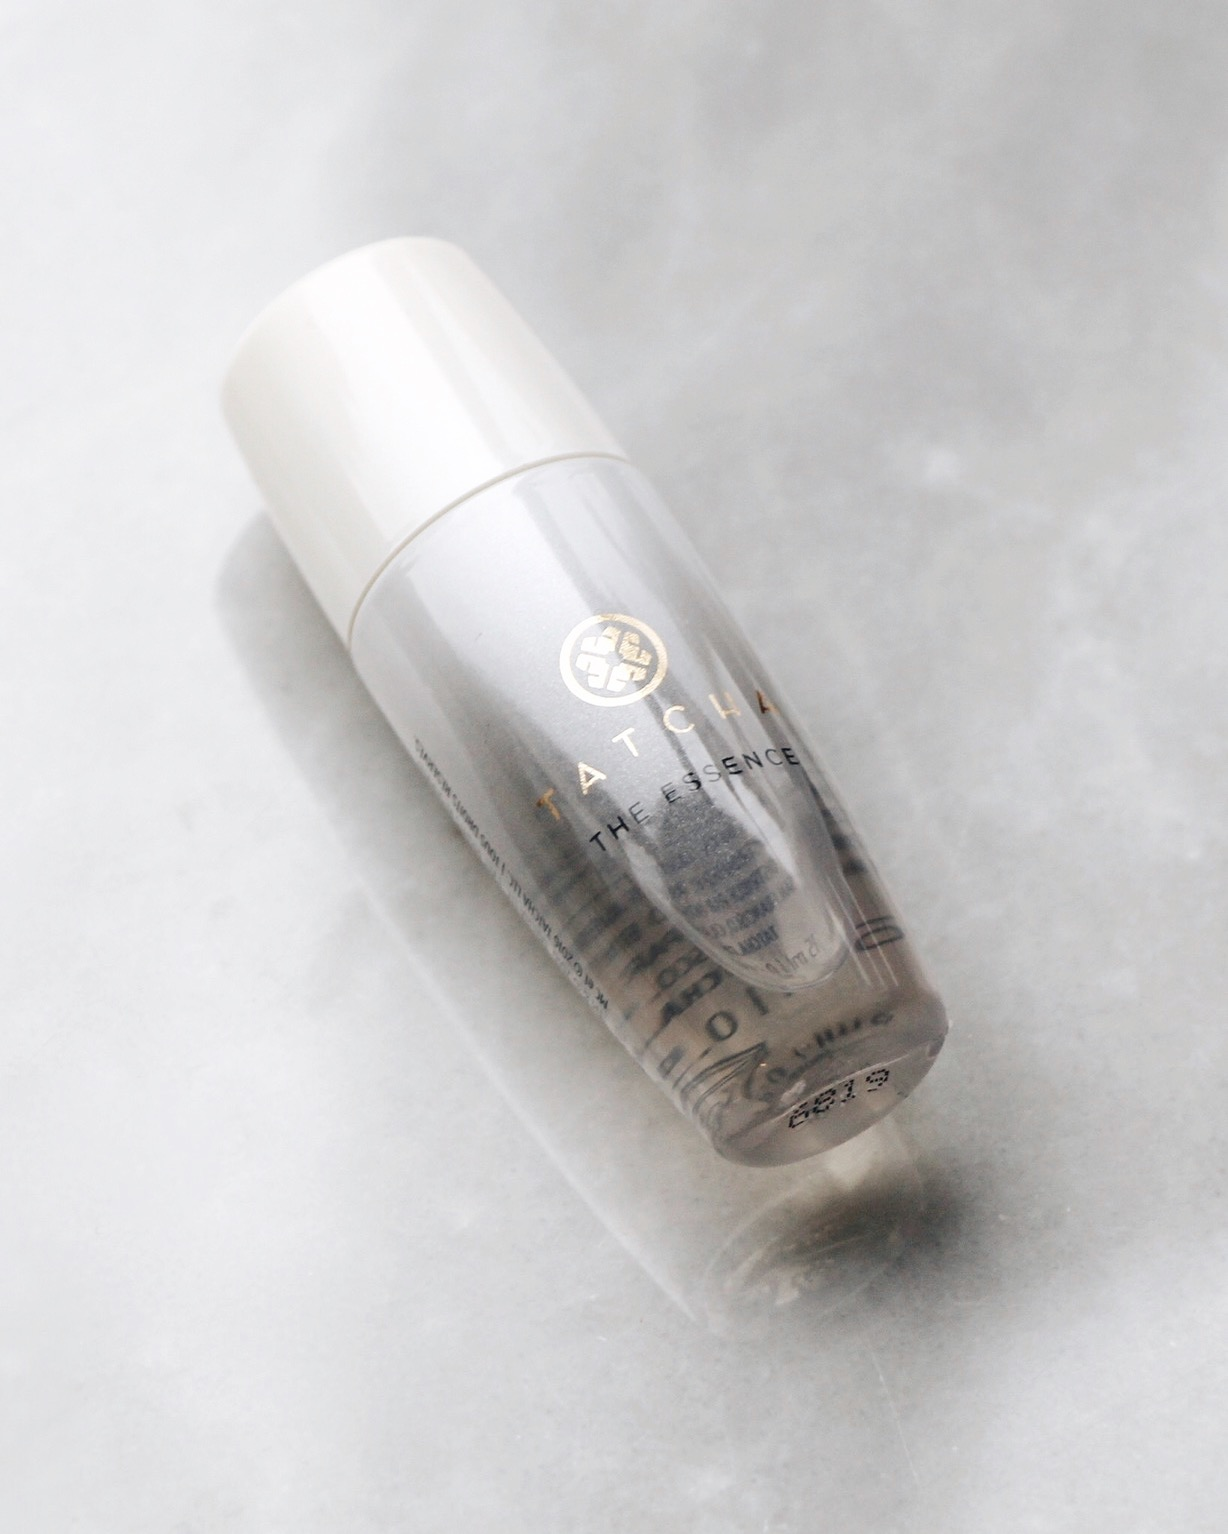 Tatcha The Essence Review: 7-Second Ritual, Tatcha, Tatcha Essence, The Essence, Japanese Skincare